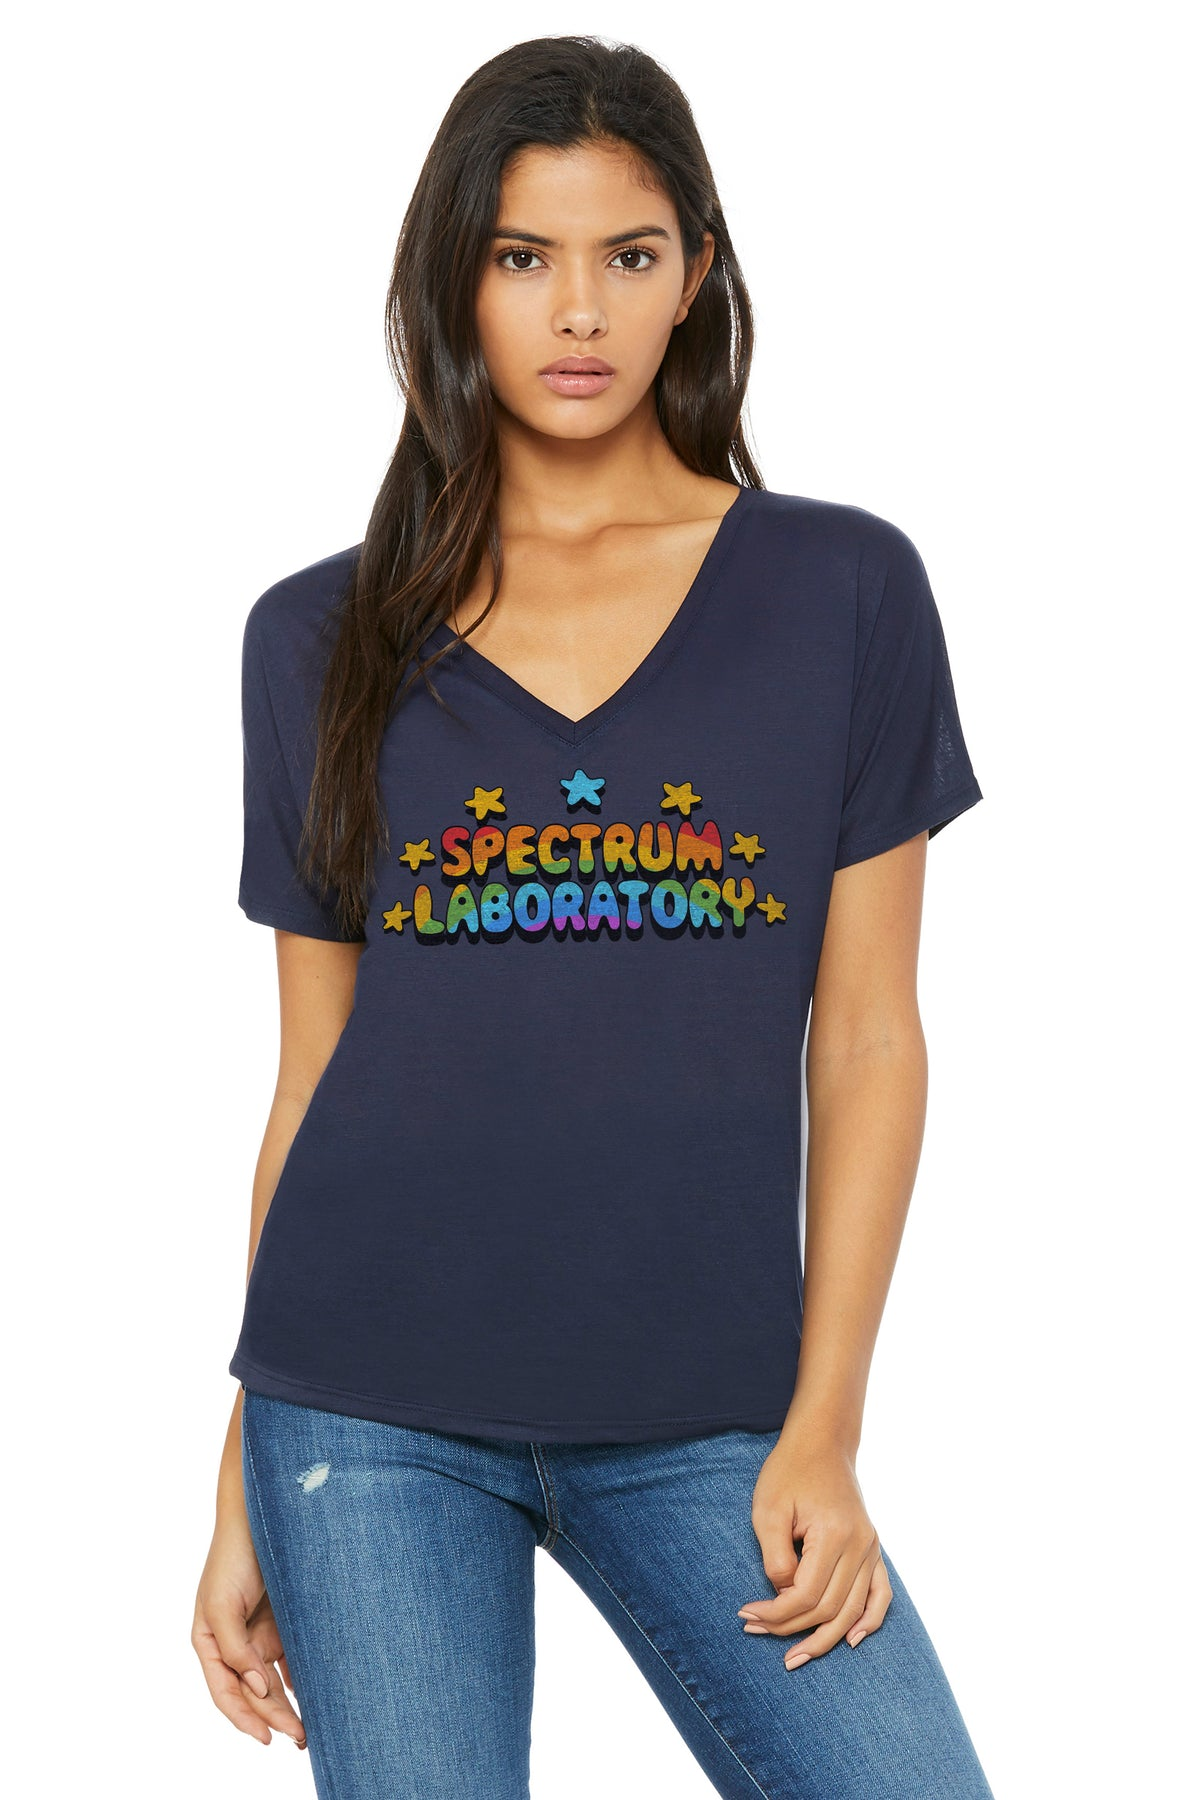 Spectrum Laboratory Logo Art Women's Flowy Vneck